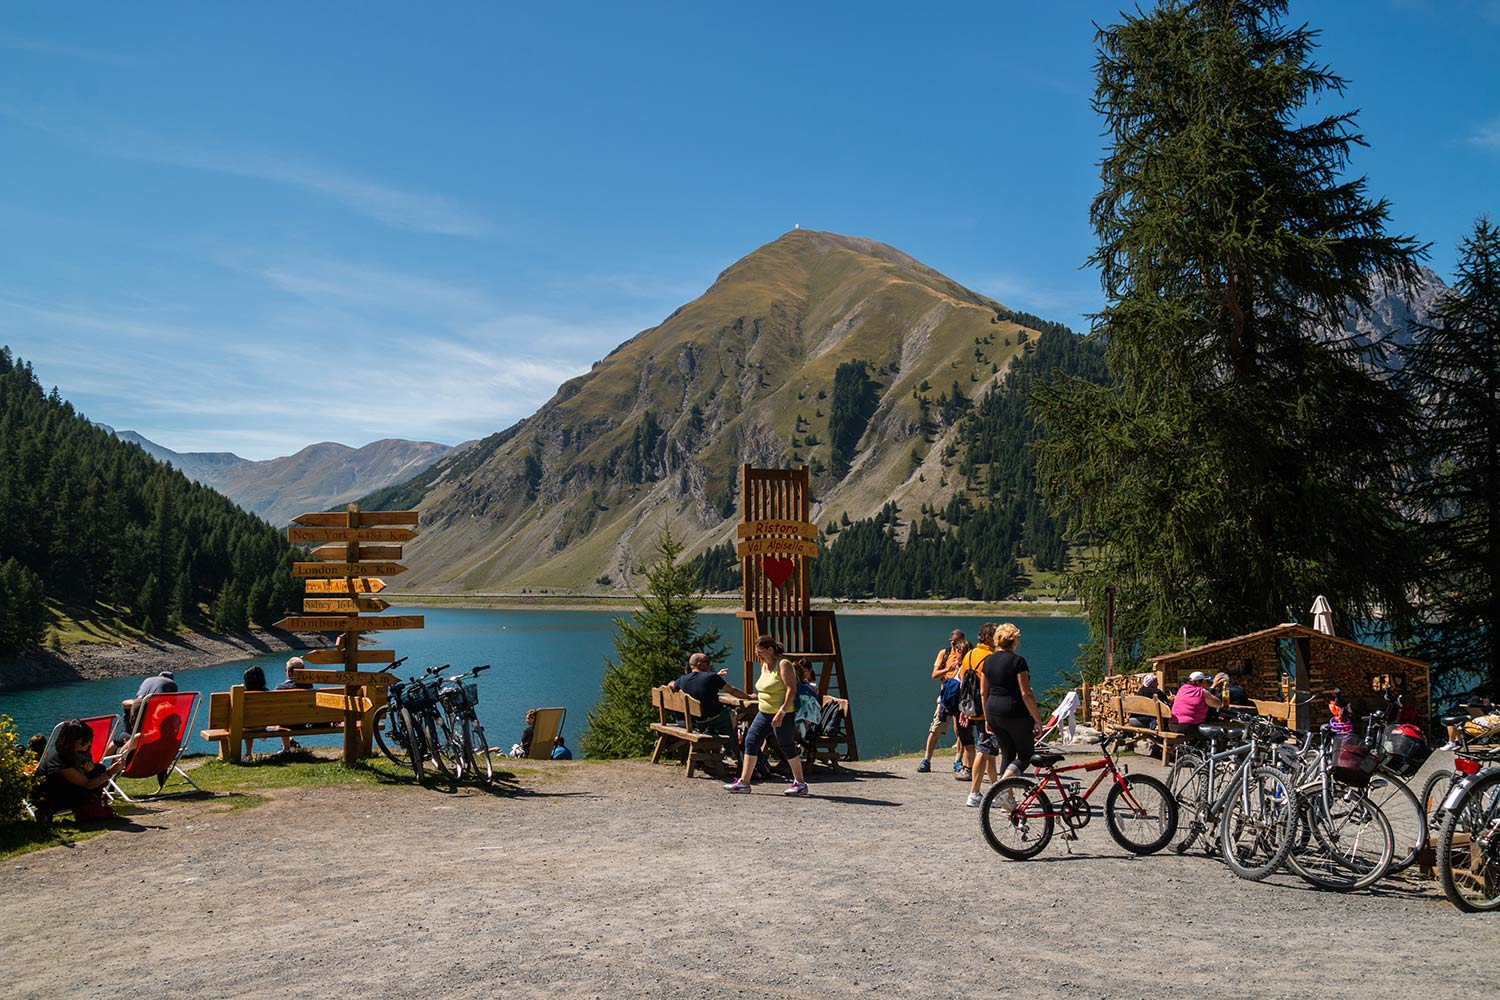 Discover Valtellina by bike: our guide to the most exciting cycling routes